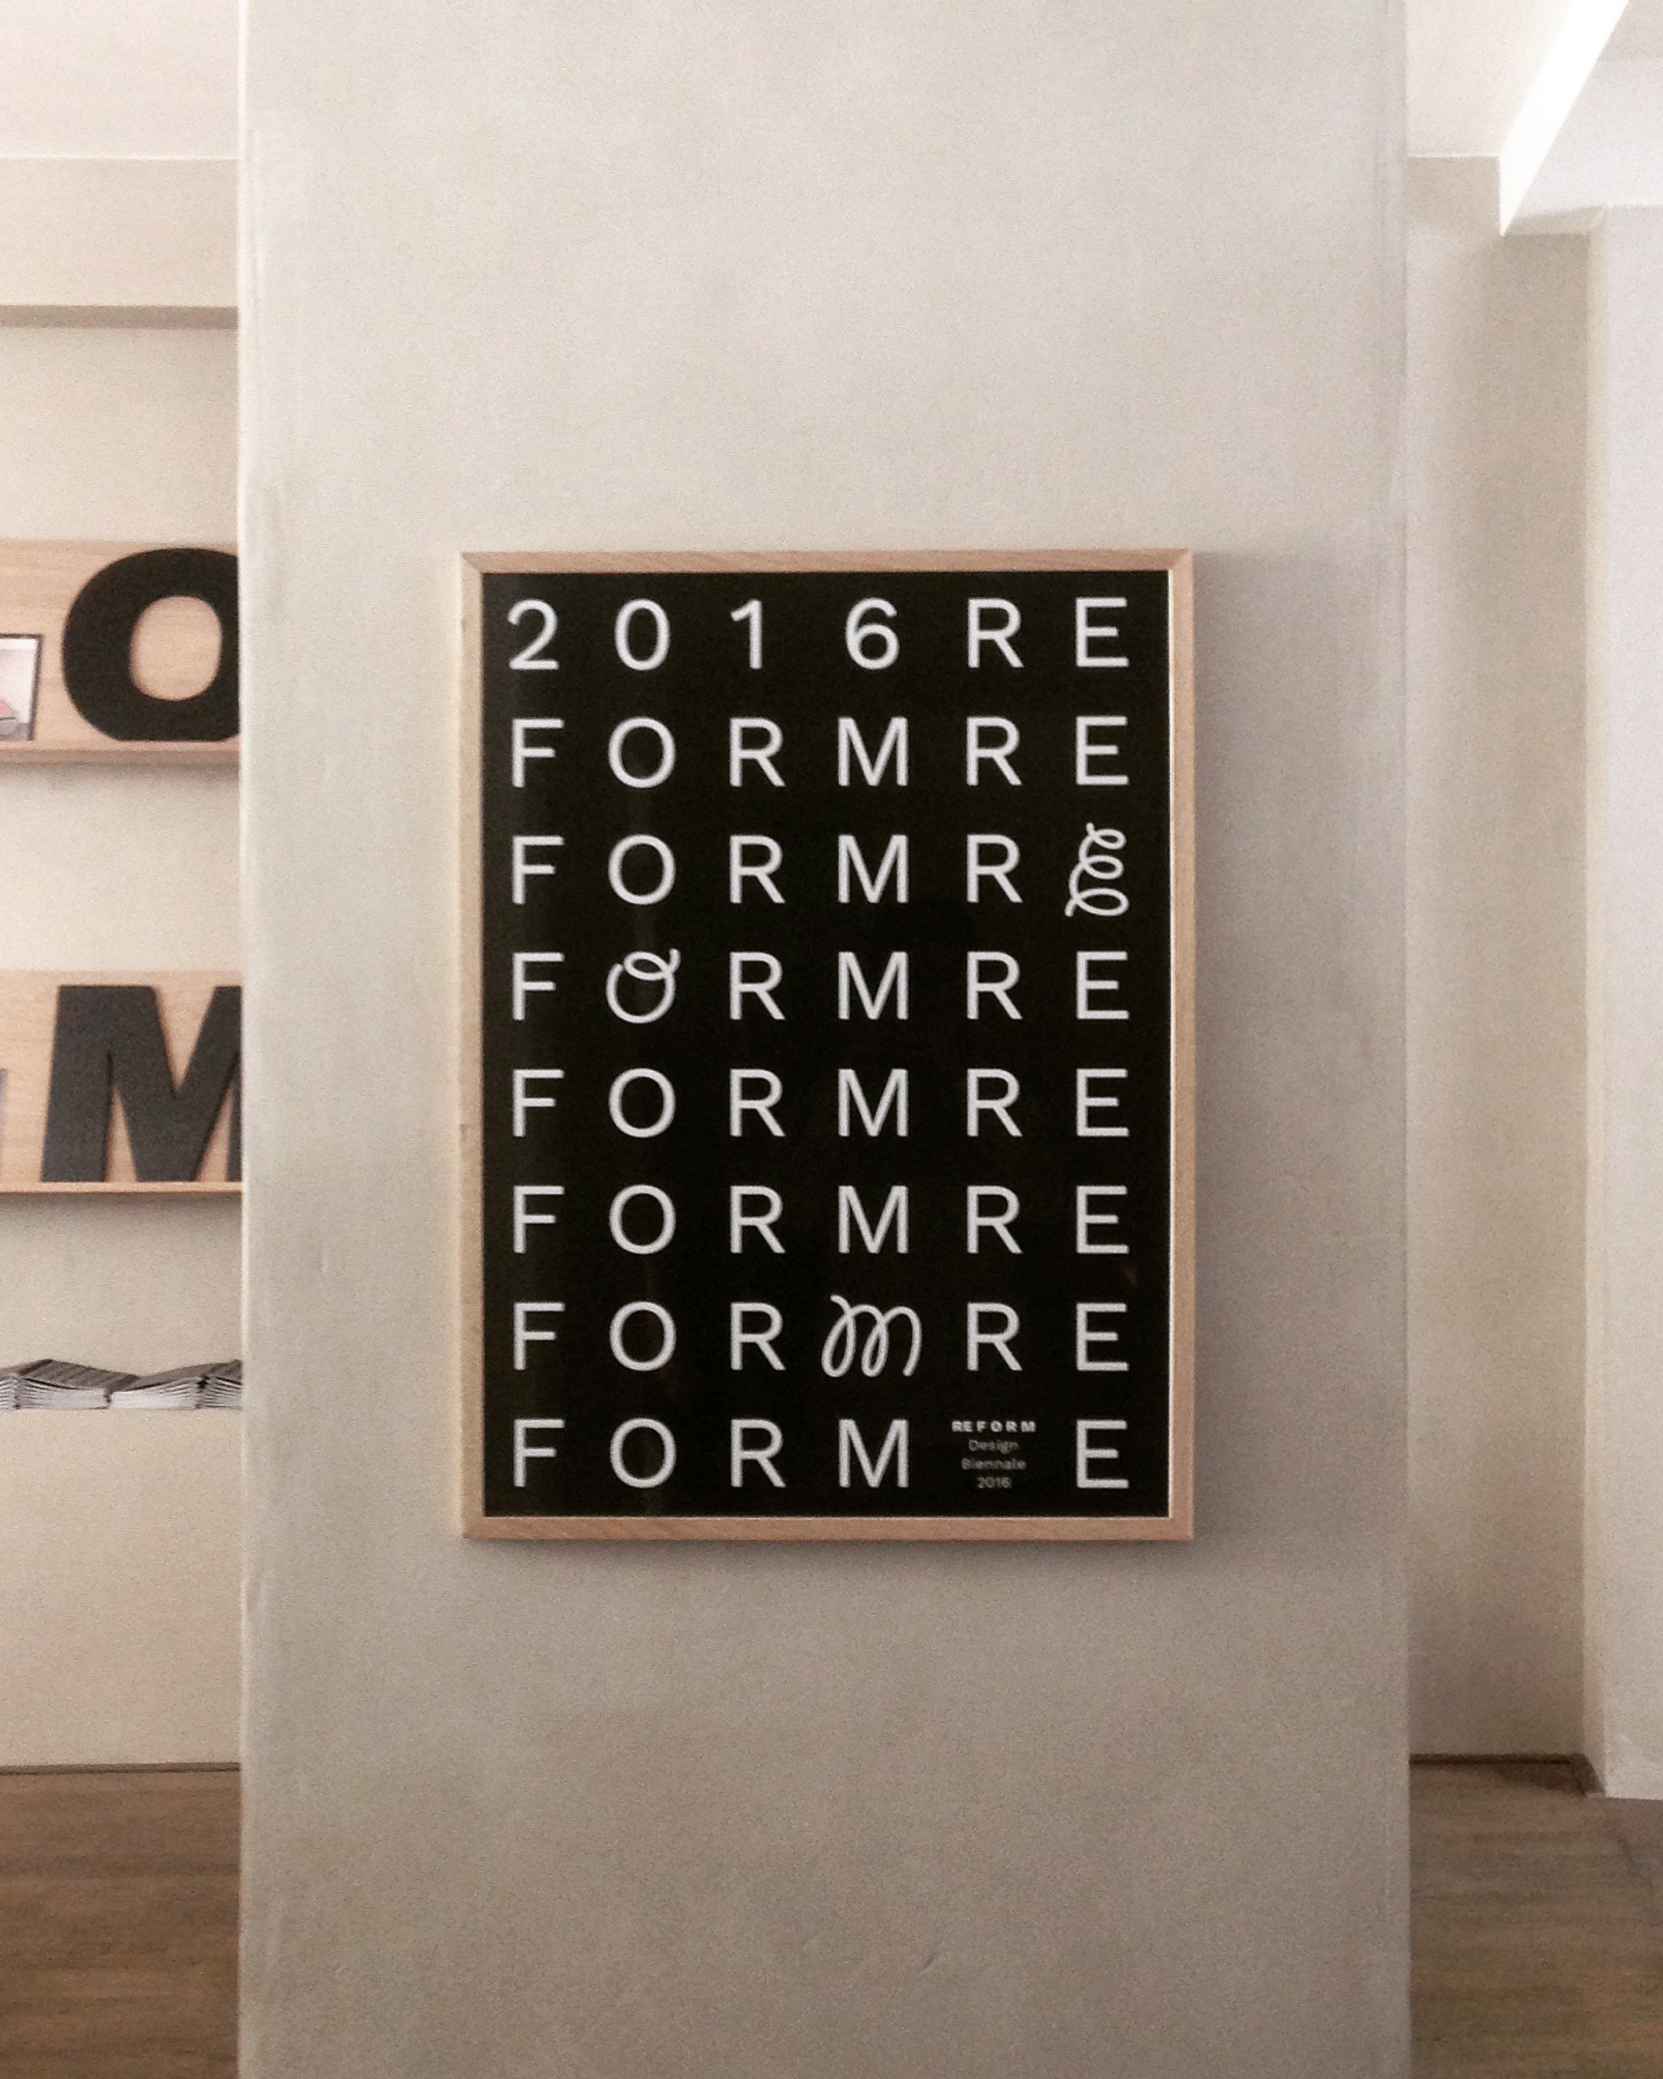 RE F O R M Design Biennale RE F O R M 2016